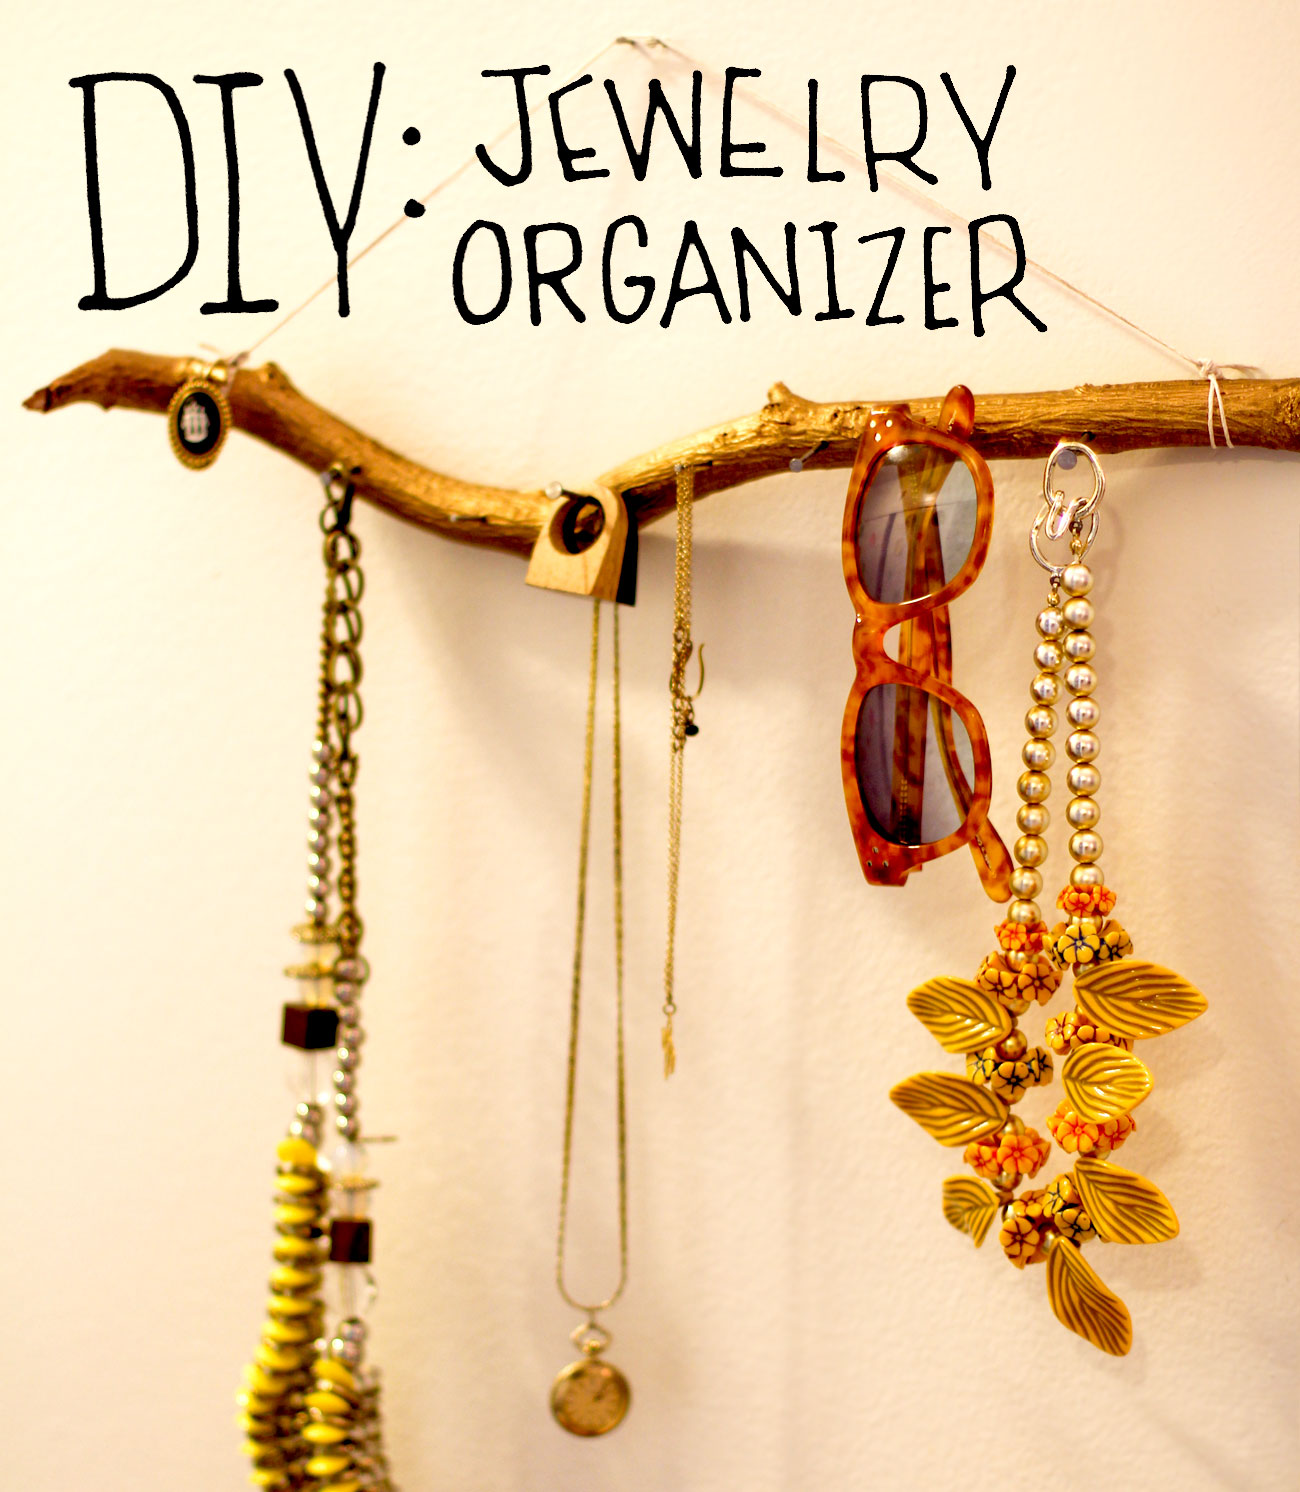 DIY: Jewelry Organizer – Crafted in Carhartt